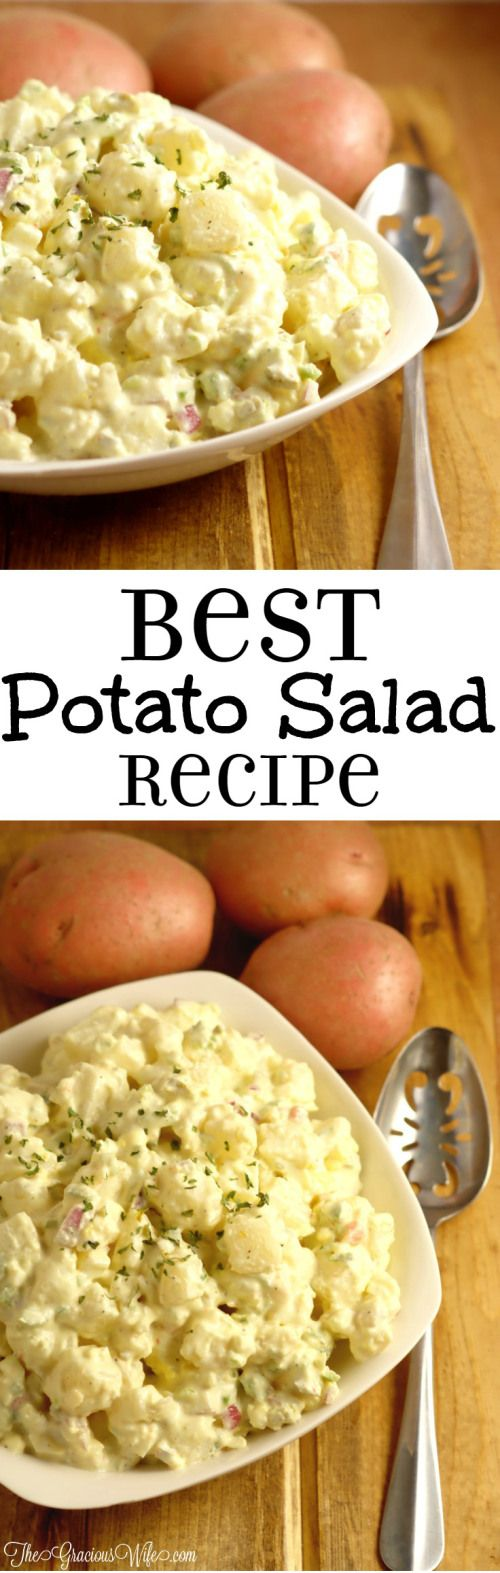 evil eye jewelry celebrities Best Potato Salad Recipe  Easy classic southern potato salad recipe I never like potato salad until I tried this recipe It   s seriously the BEST